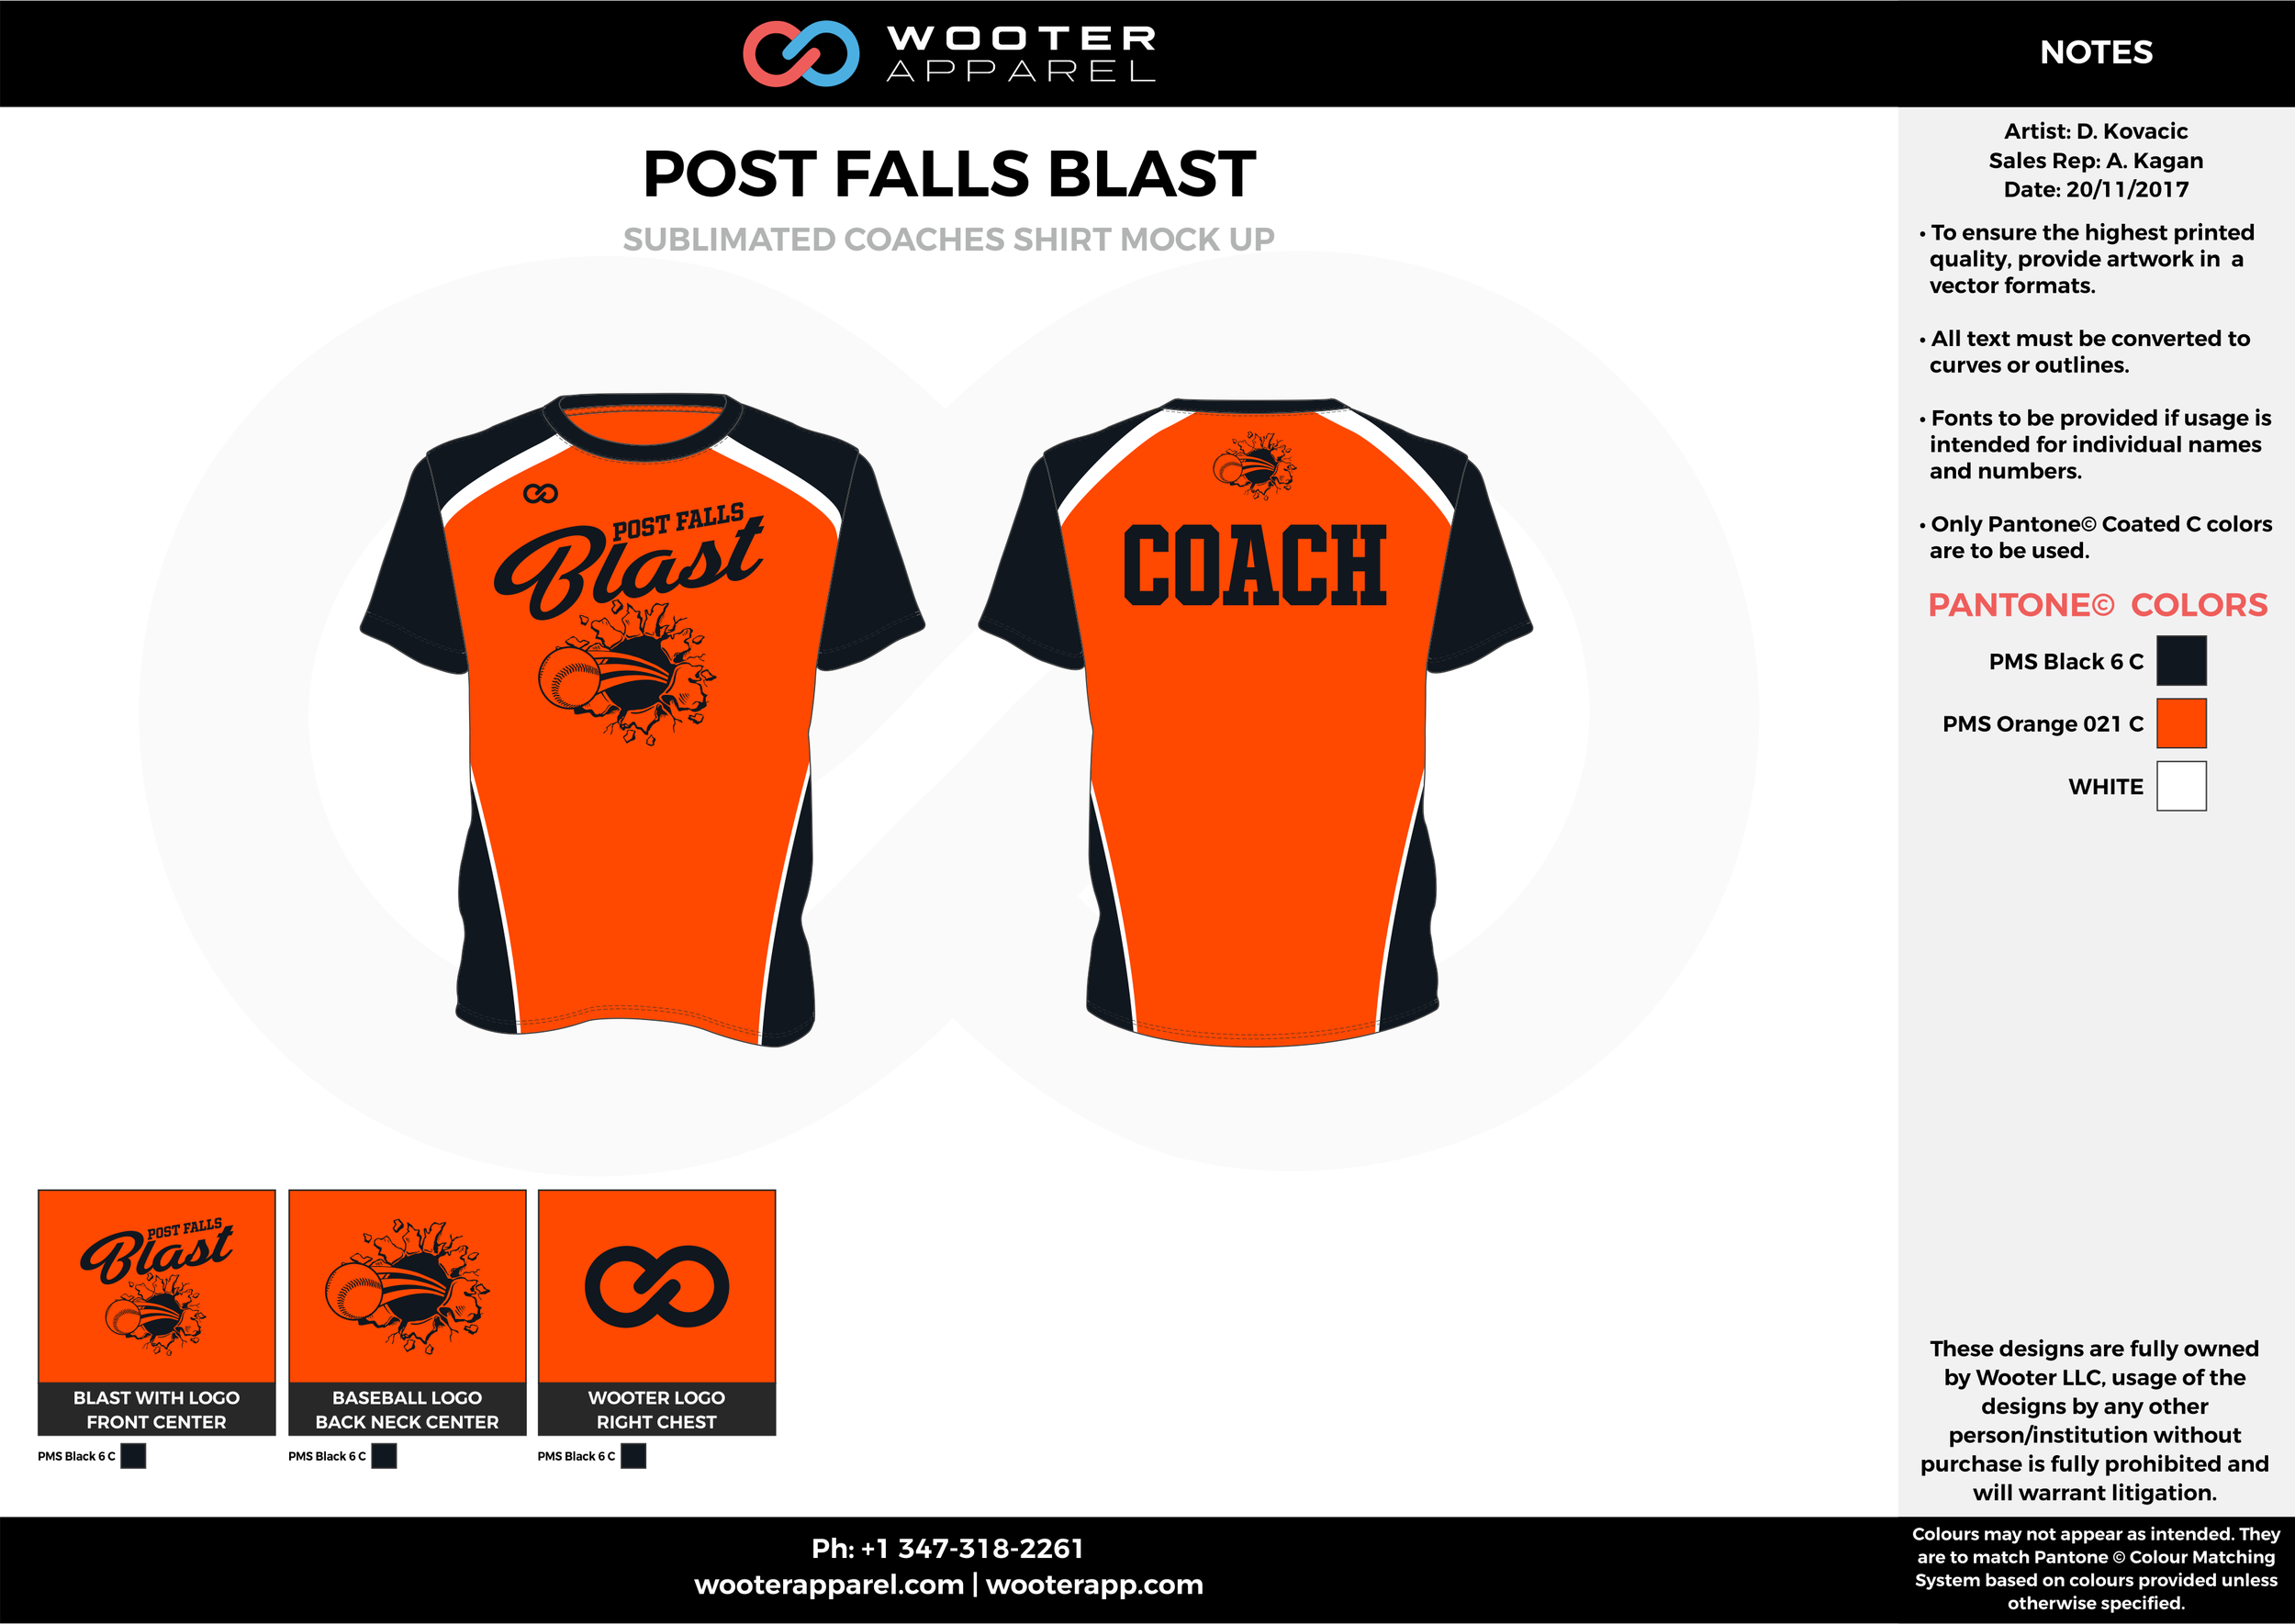 POST FALLS BLAST orange black white baseball uniforms jerseys tops